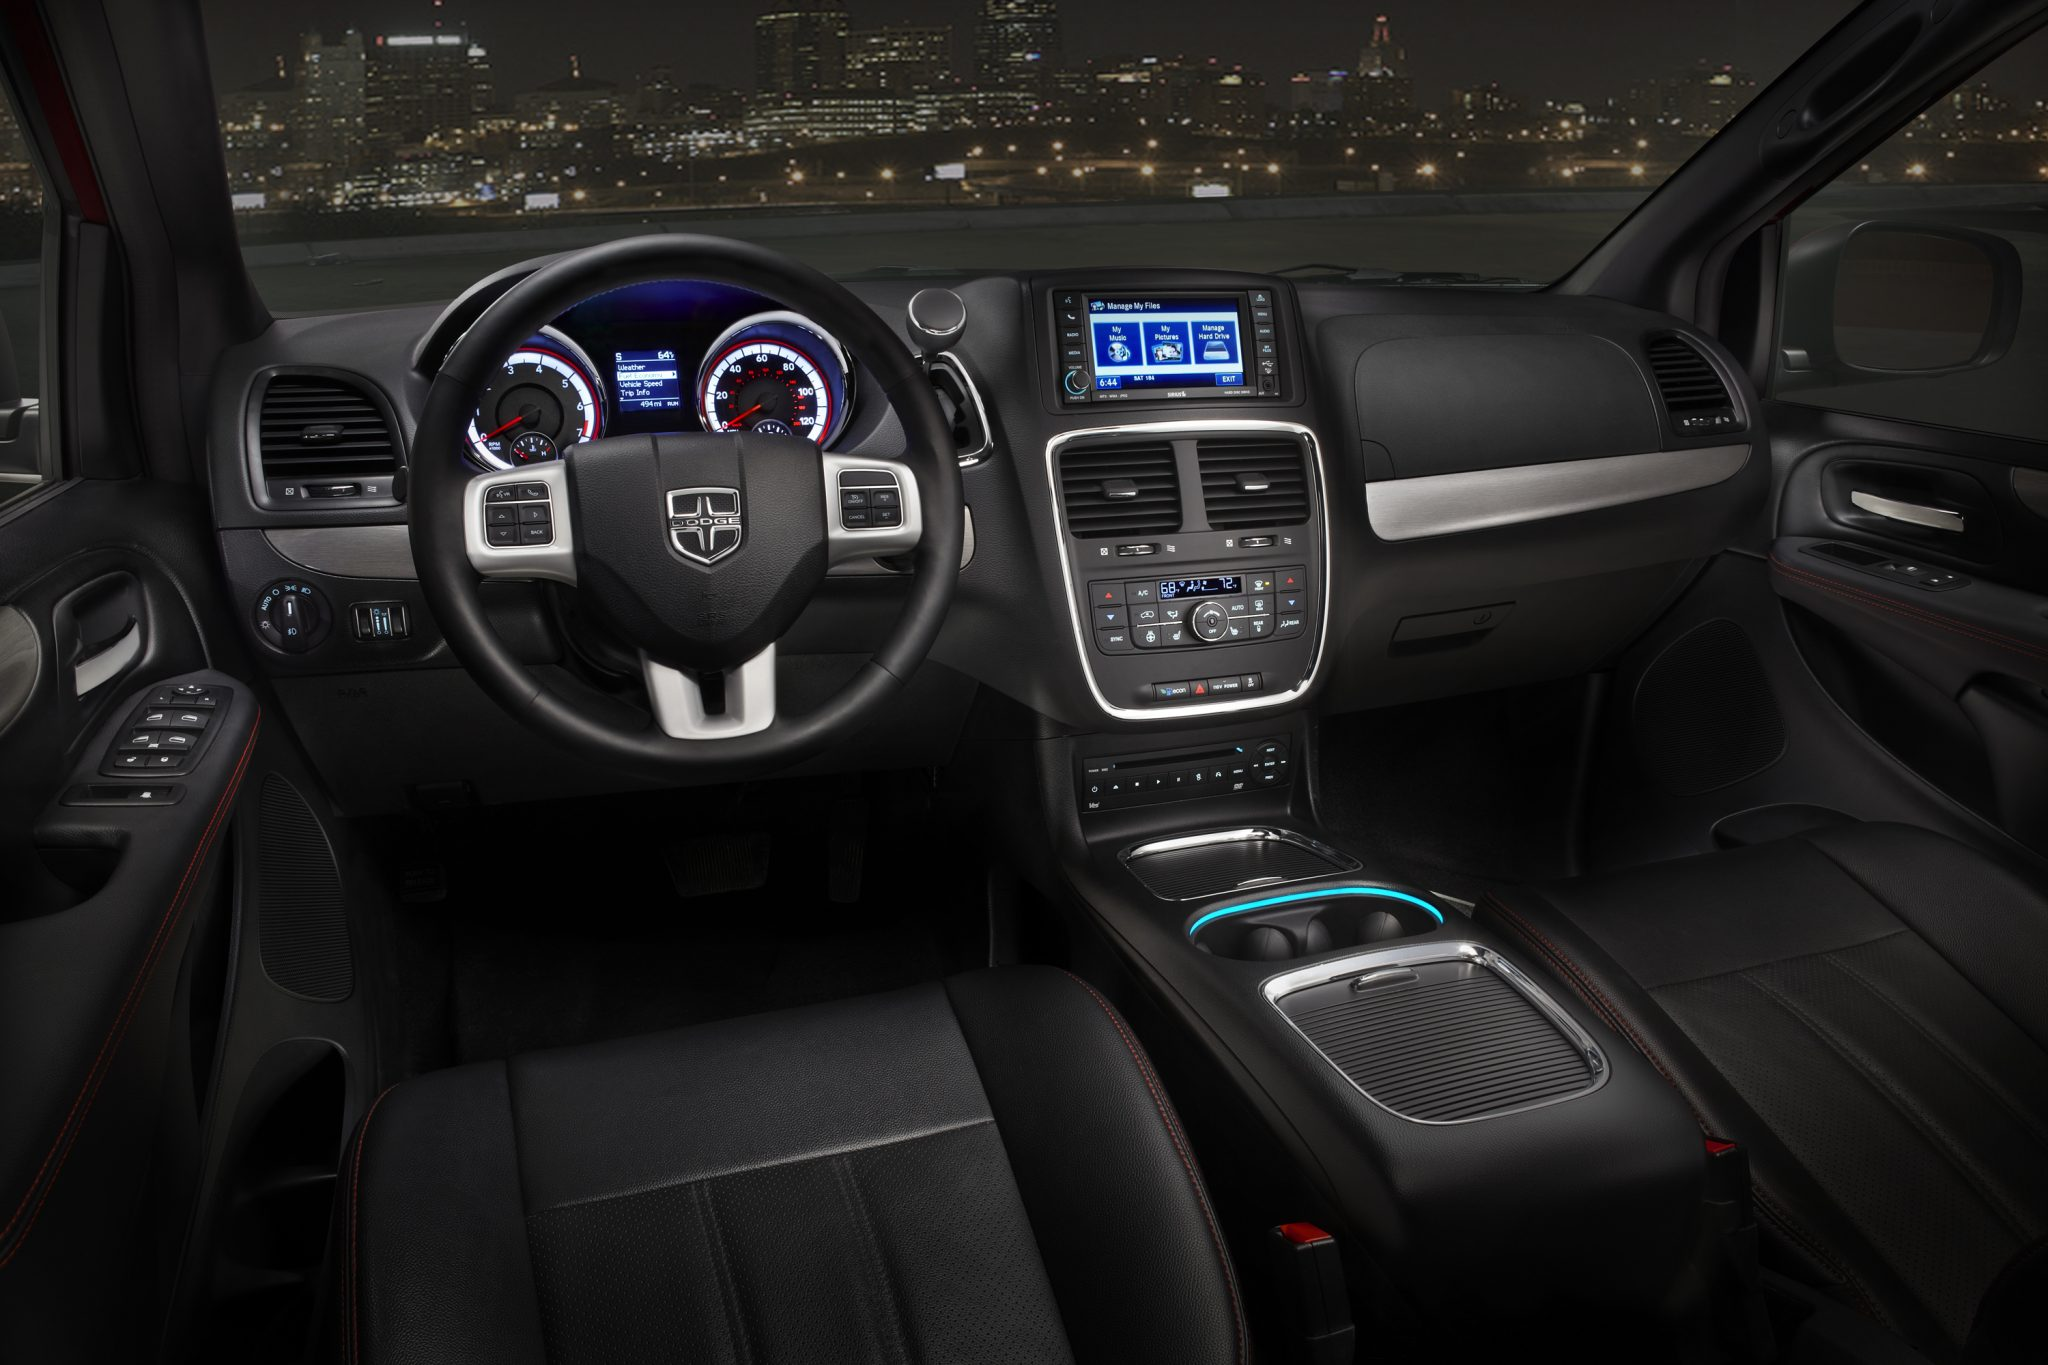 2013 Dodge Grand Caravan Overview - The News Wheel